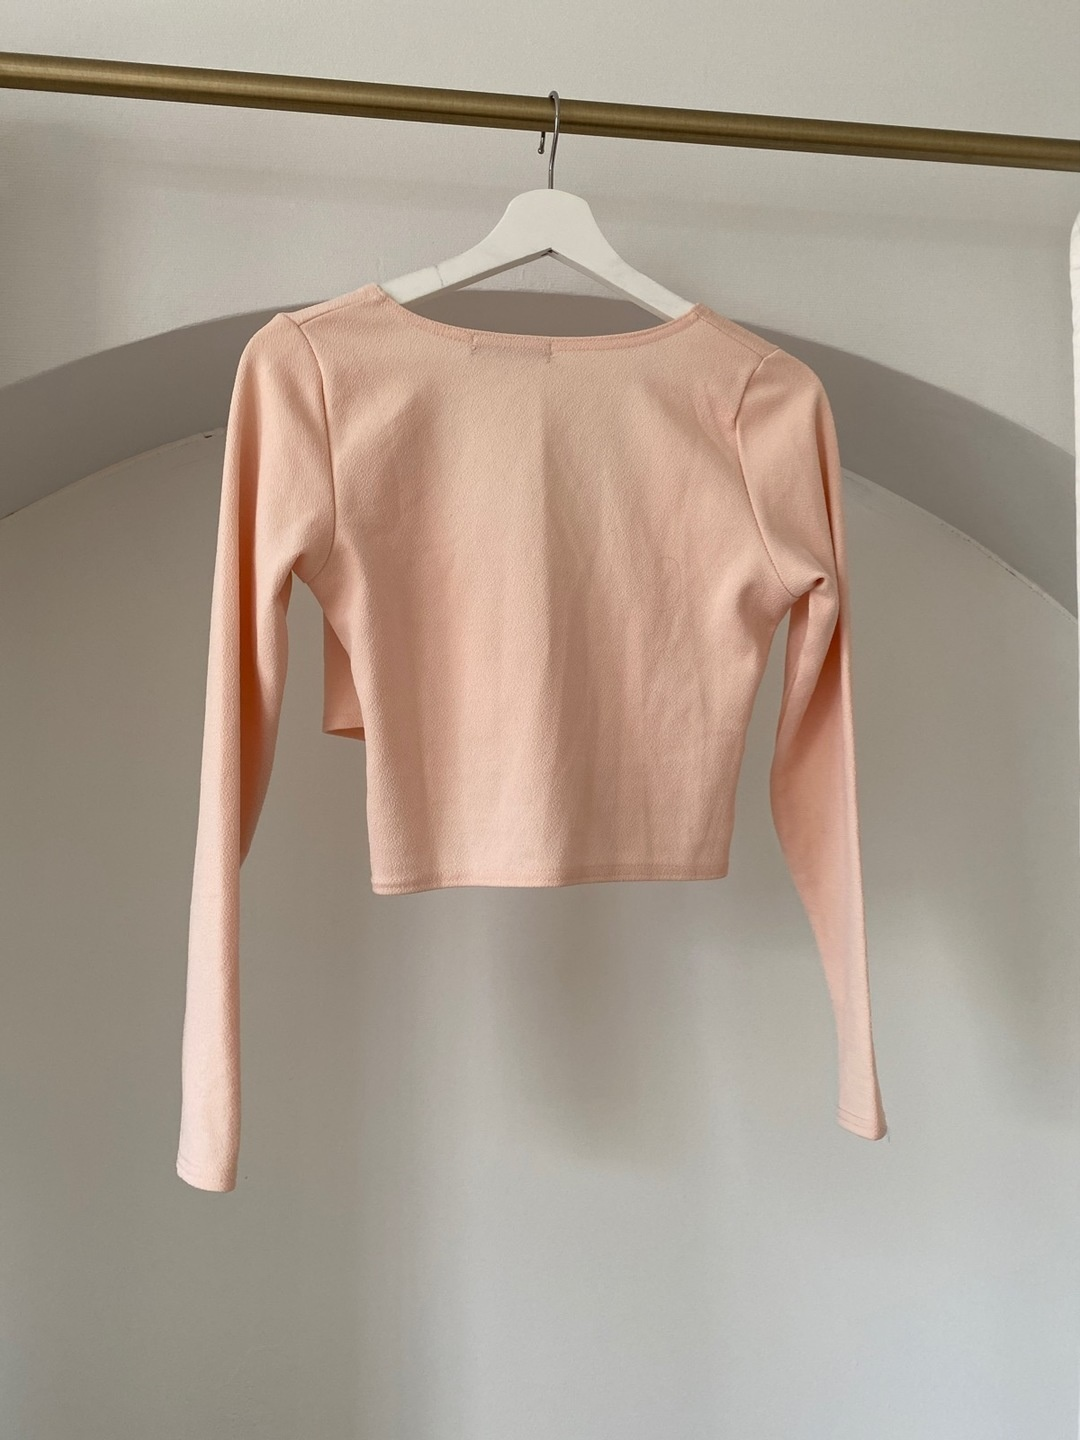 Women's blouses & shirts - MISSGUIDED photo 2